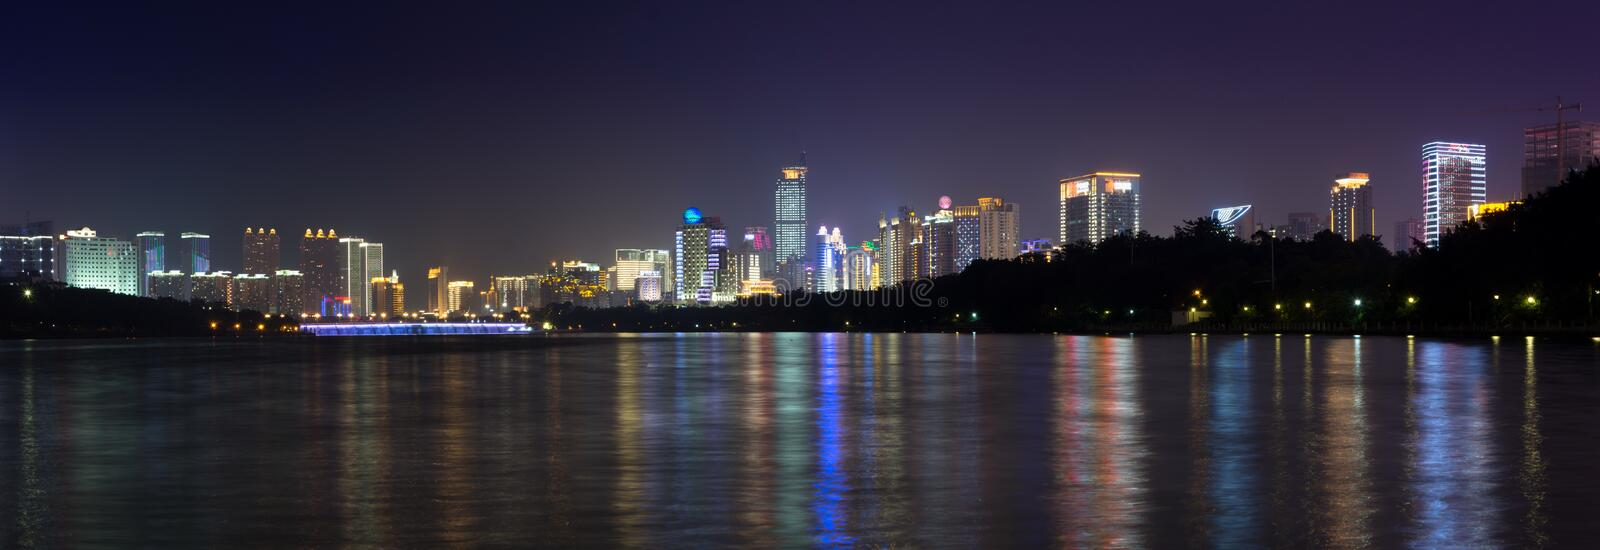 NANNING, CHINA - SEPTEMBER 18: View at the modern business city. Area with high buildings reflecting in the Nanhu lake. Nanning is the capital city of Guangxi stock photos